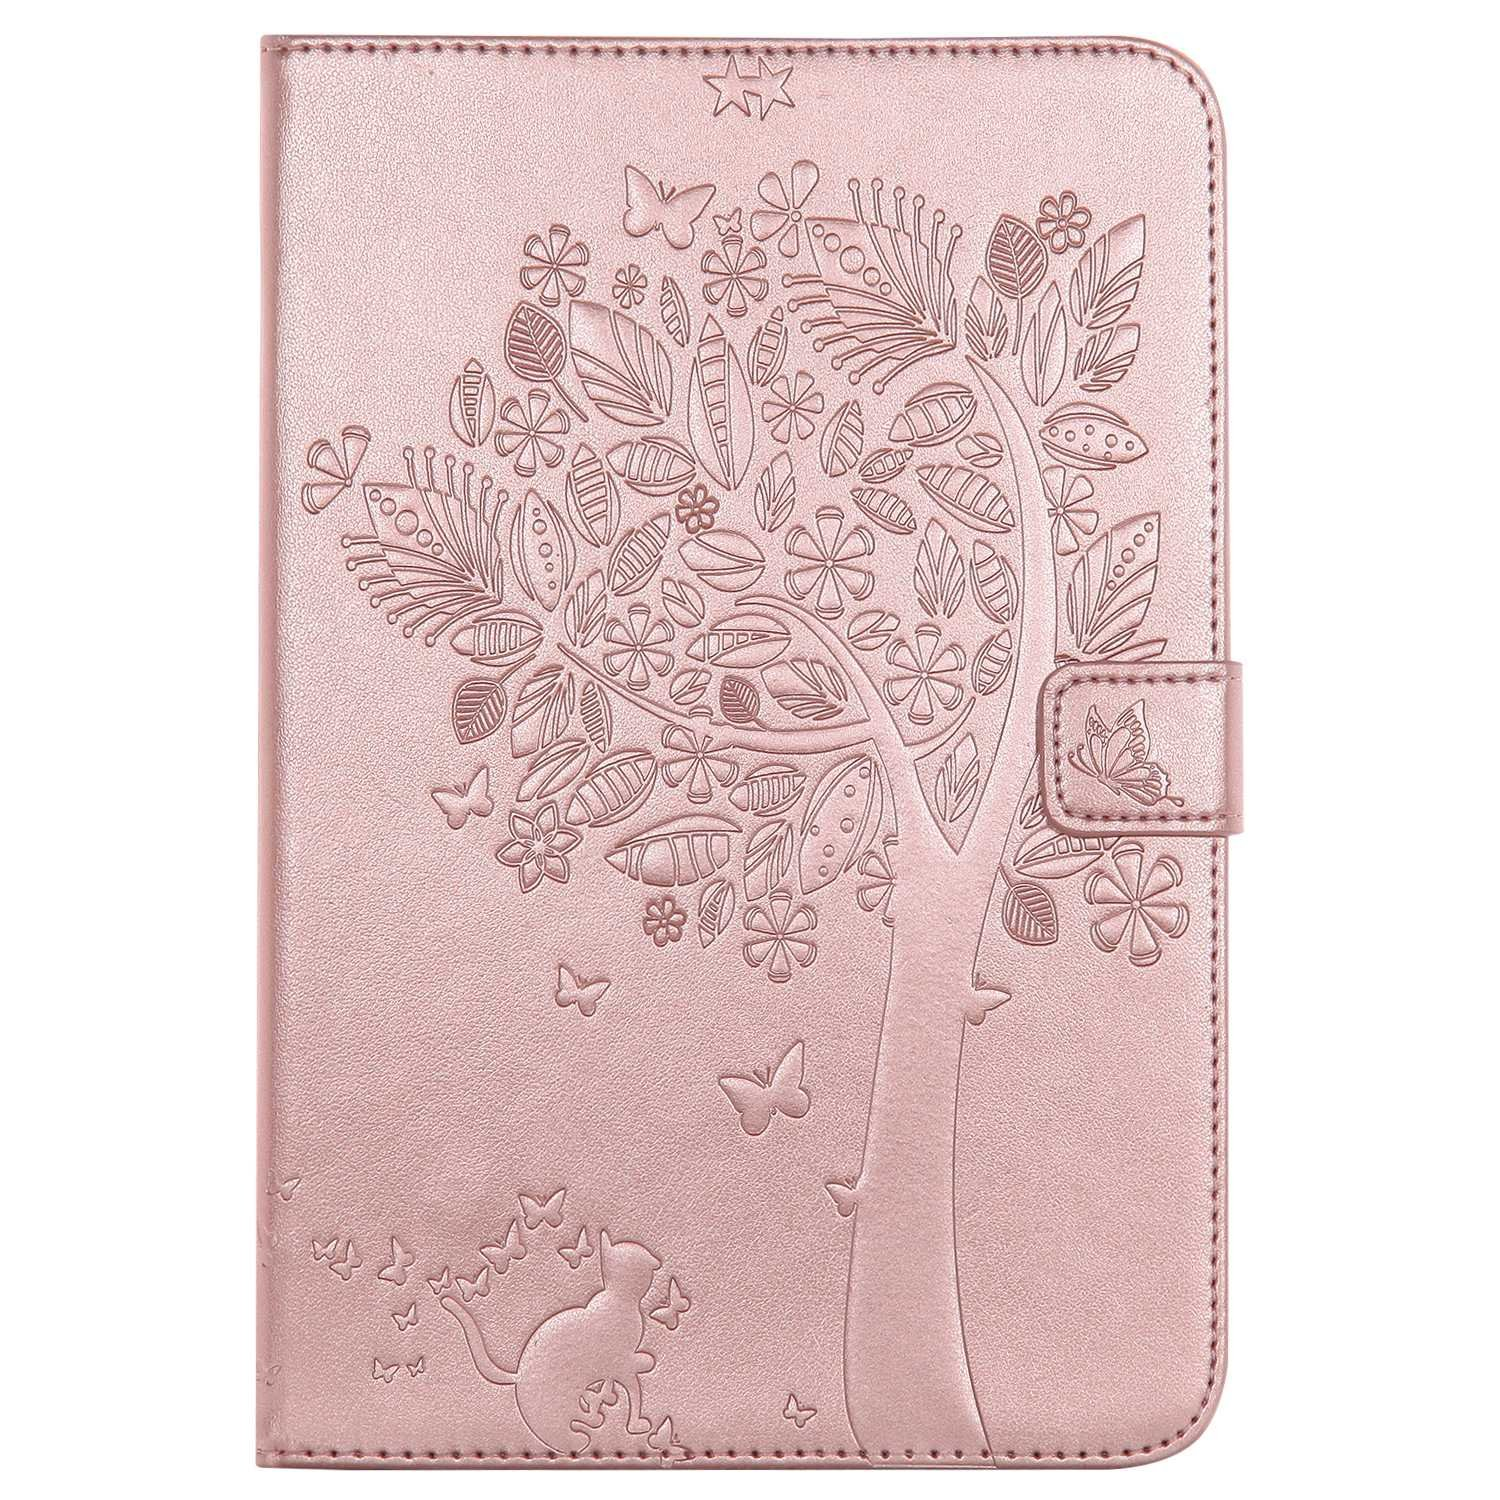 Bear Village Galaxy Tab a 8.0 Inch Case, Leather Magnetic Case, Fullbody Protective Cover with Stand Function for Samsung Galaxy Tab a 8.0 Inch, Rose Gold by Bear Village